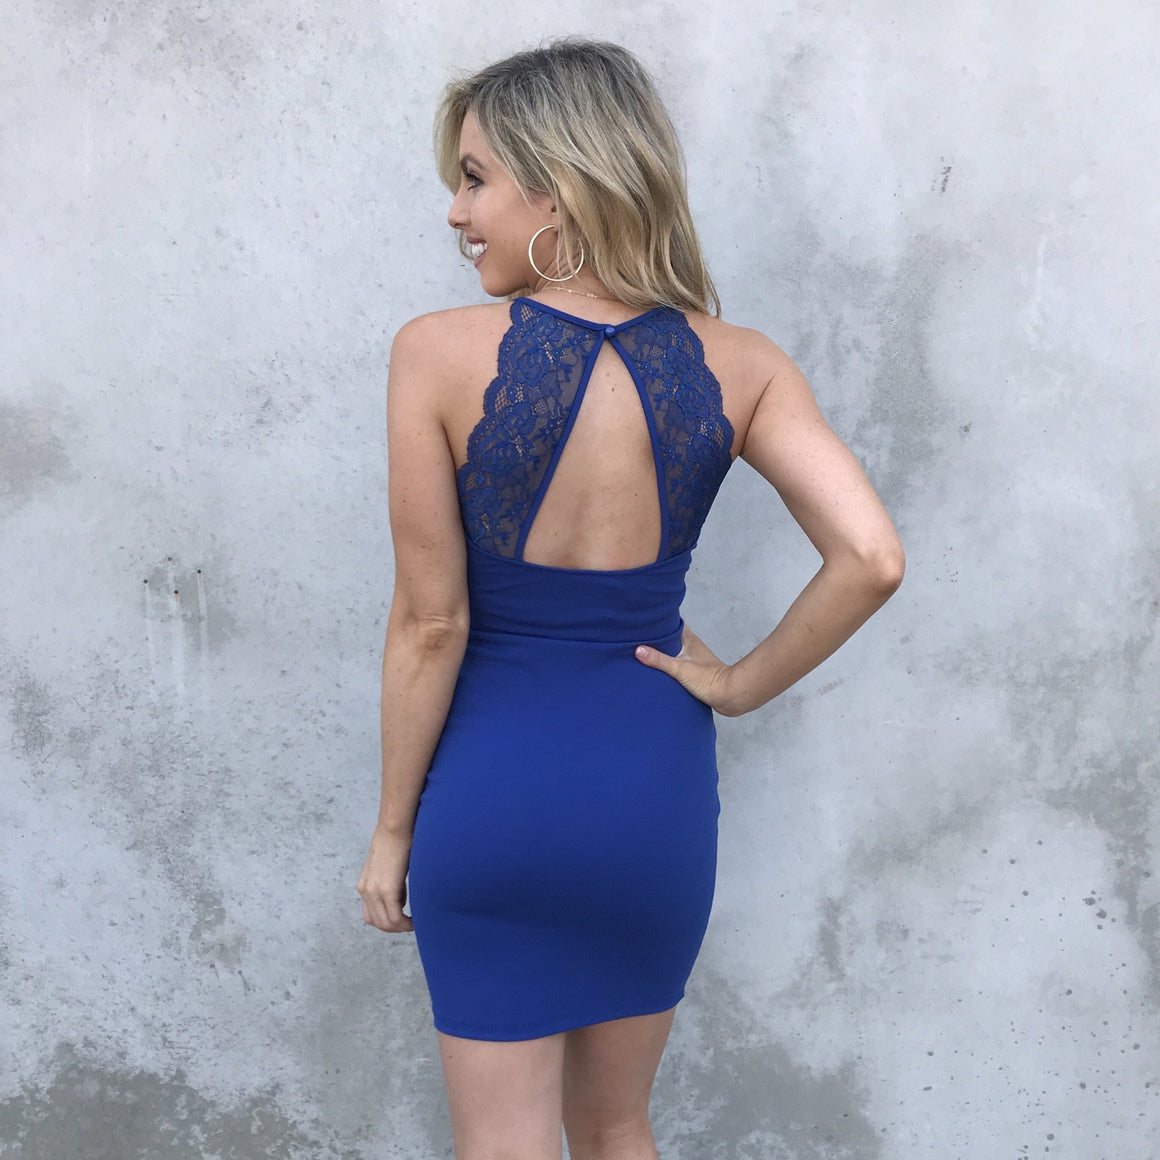 Adore You Dress in Blue - Dainty Hooligan